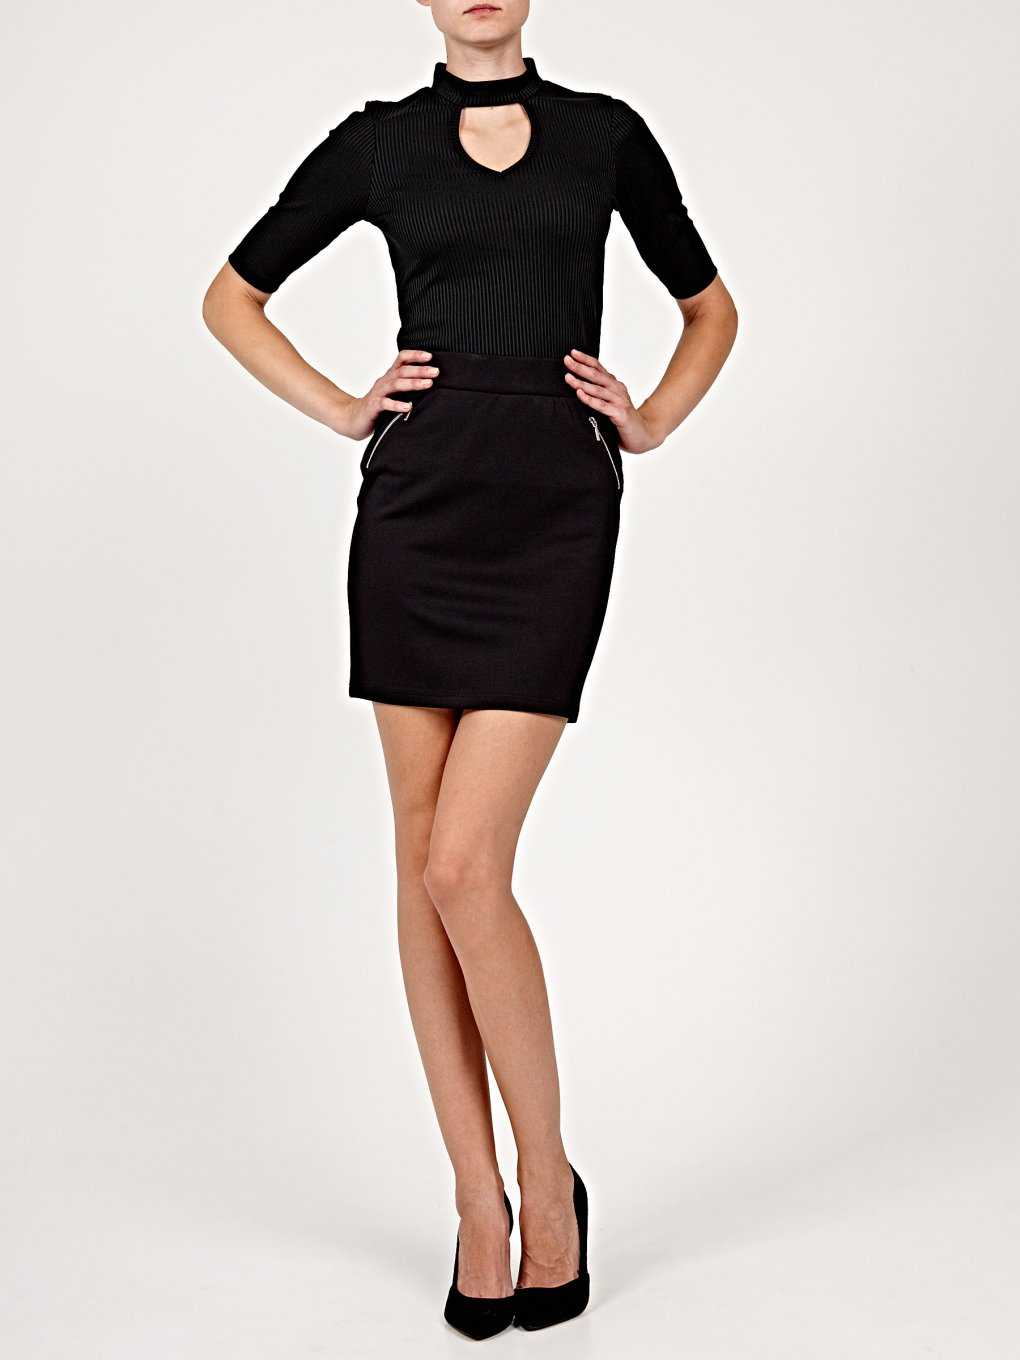 Pencil skirt with zipper details